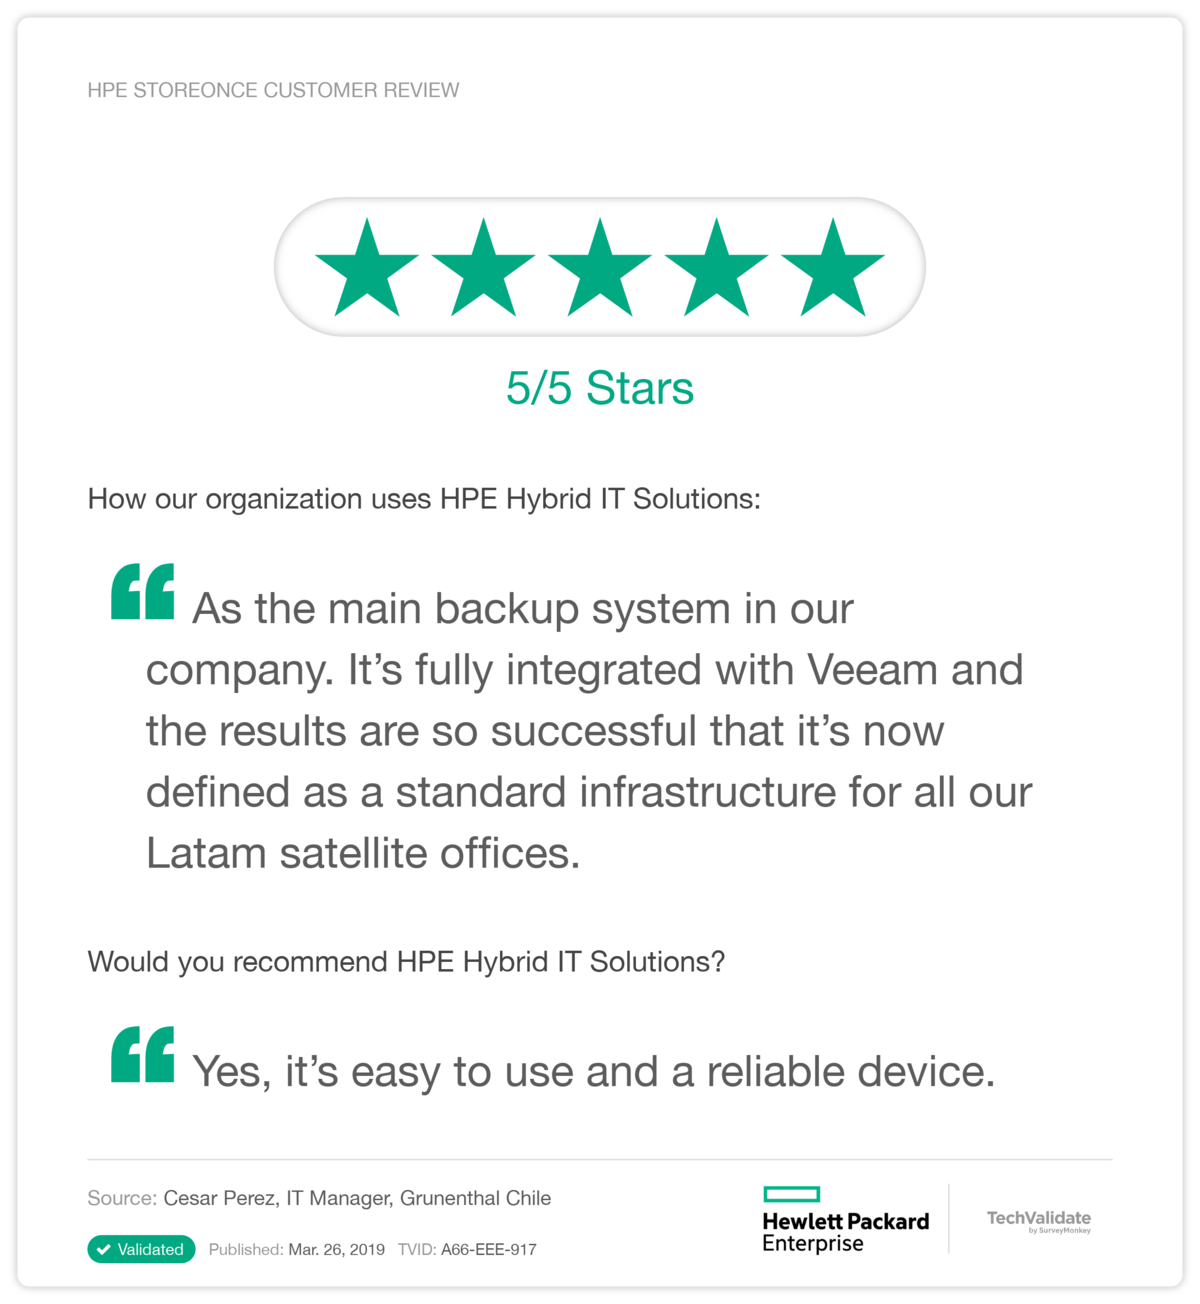 HPE StoreOnce Customer Review